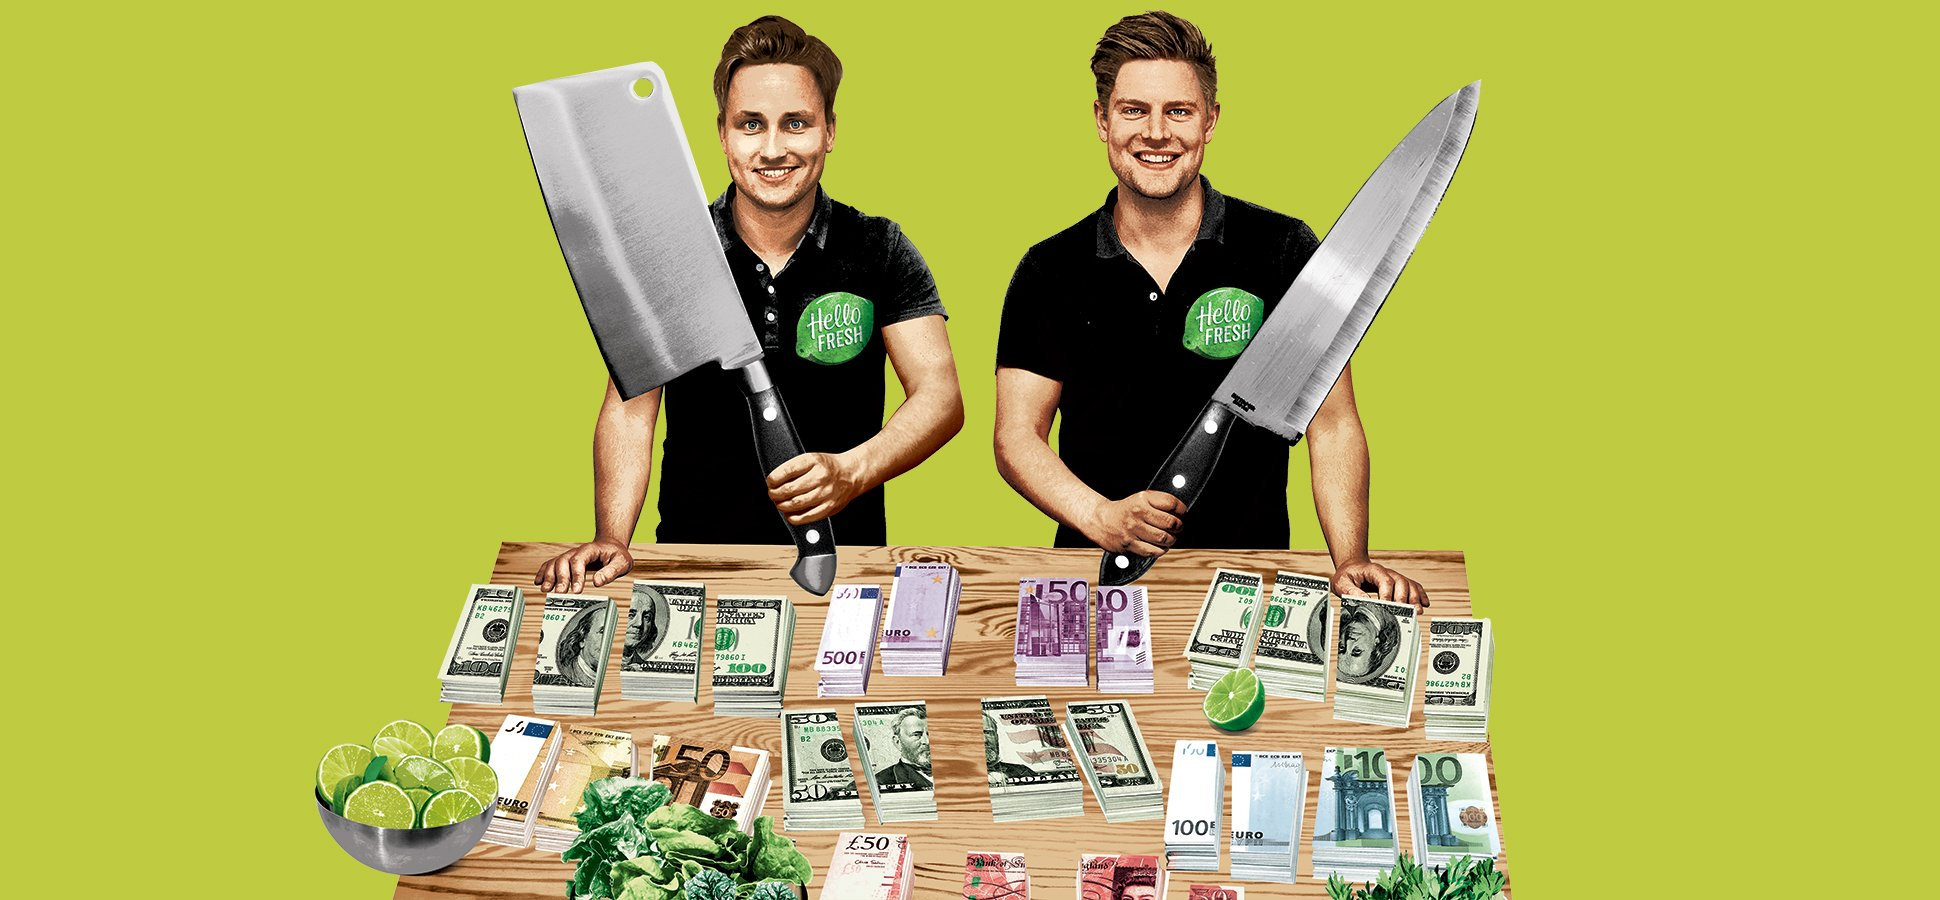 The World's Most Ruthless Food Startup: The Inside Story of How HelloFresh Clawed Its Way to the Top